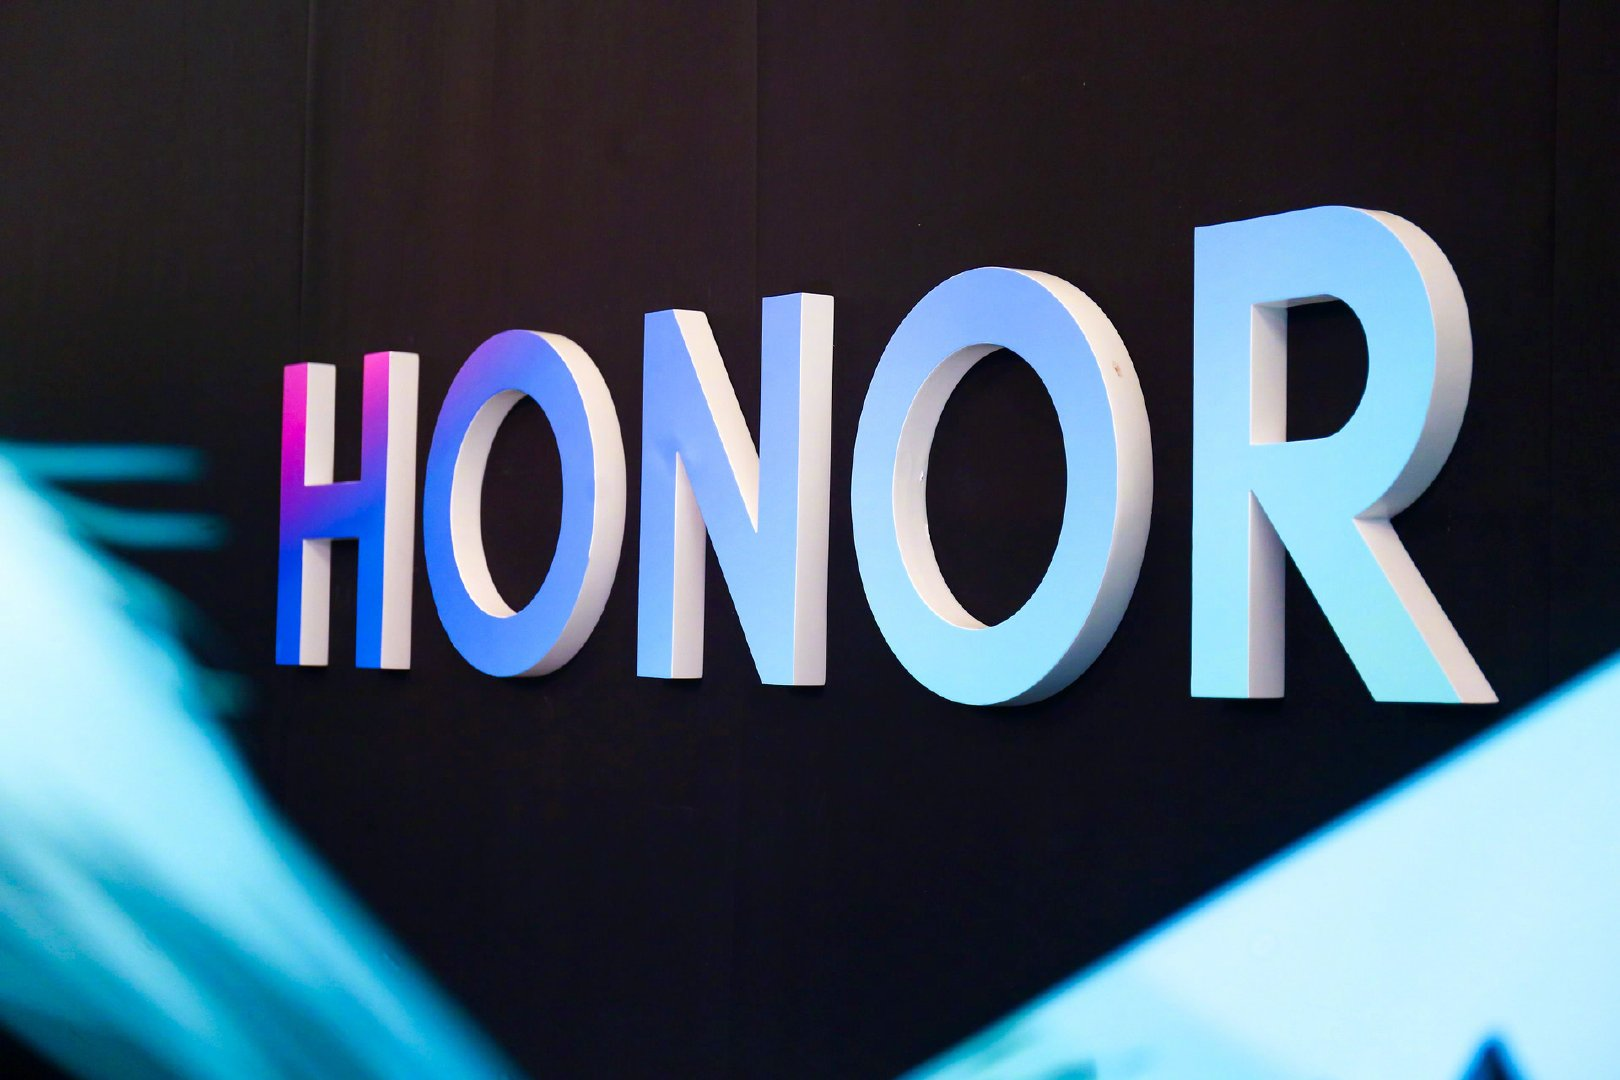 Honor 5G smartphone is currently being tested, will be released in the fourth quarter of 2019 1